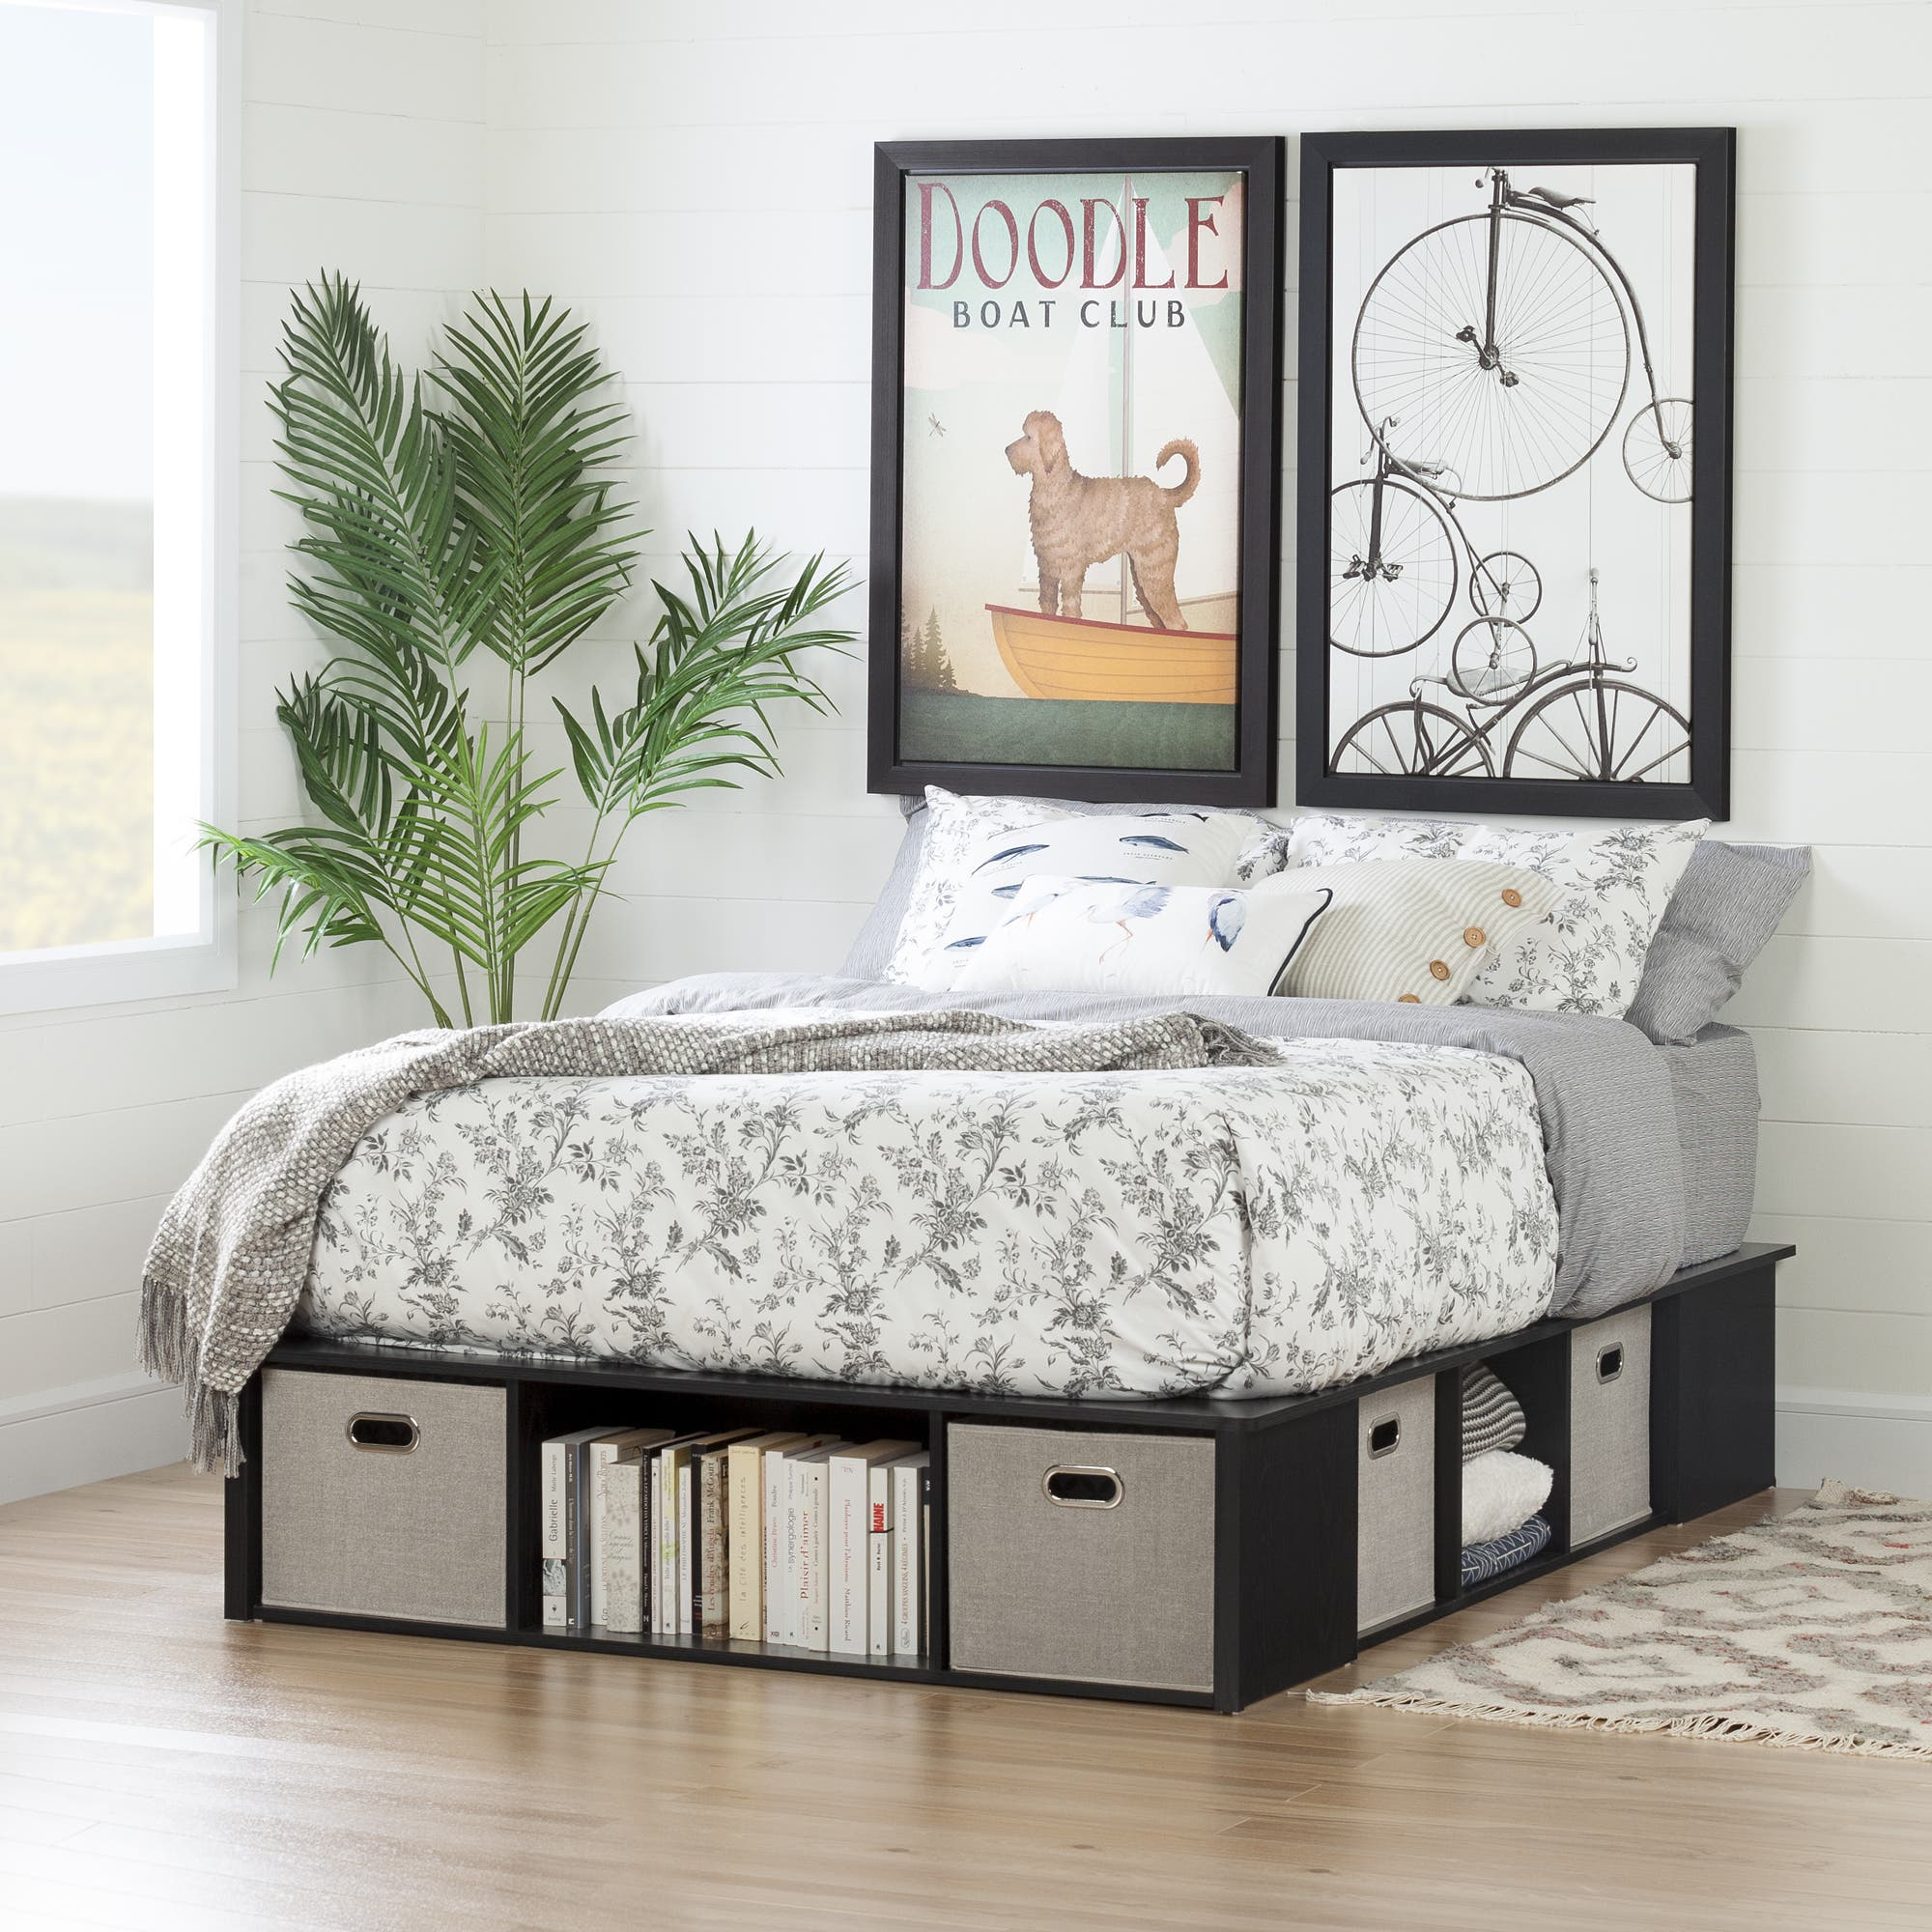 Best Place To Buy Bedroom Sets: Buy Beds Online At Overstock